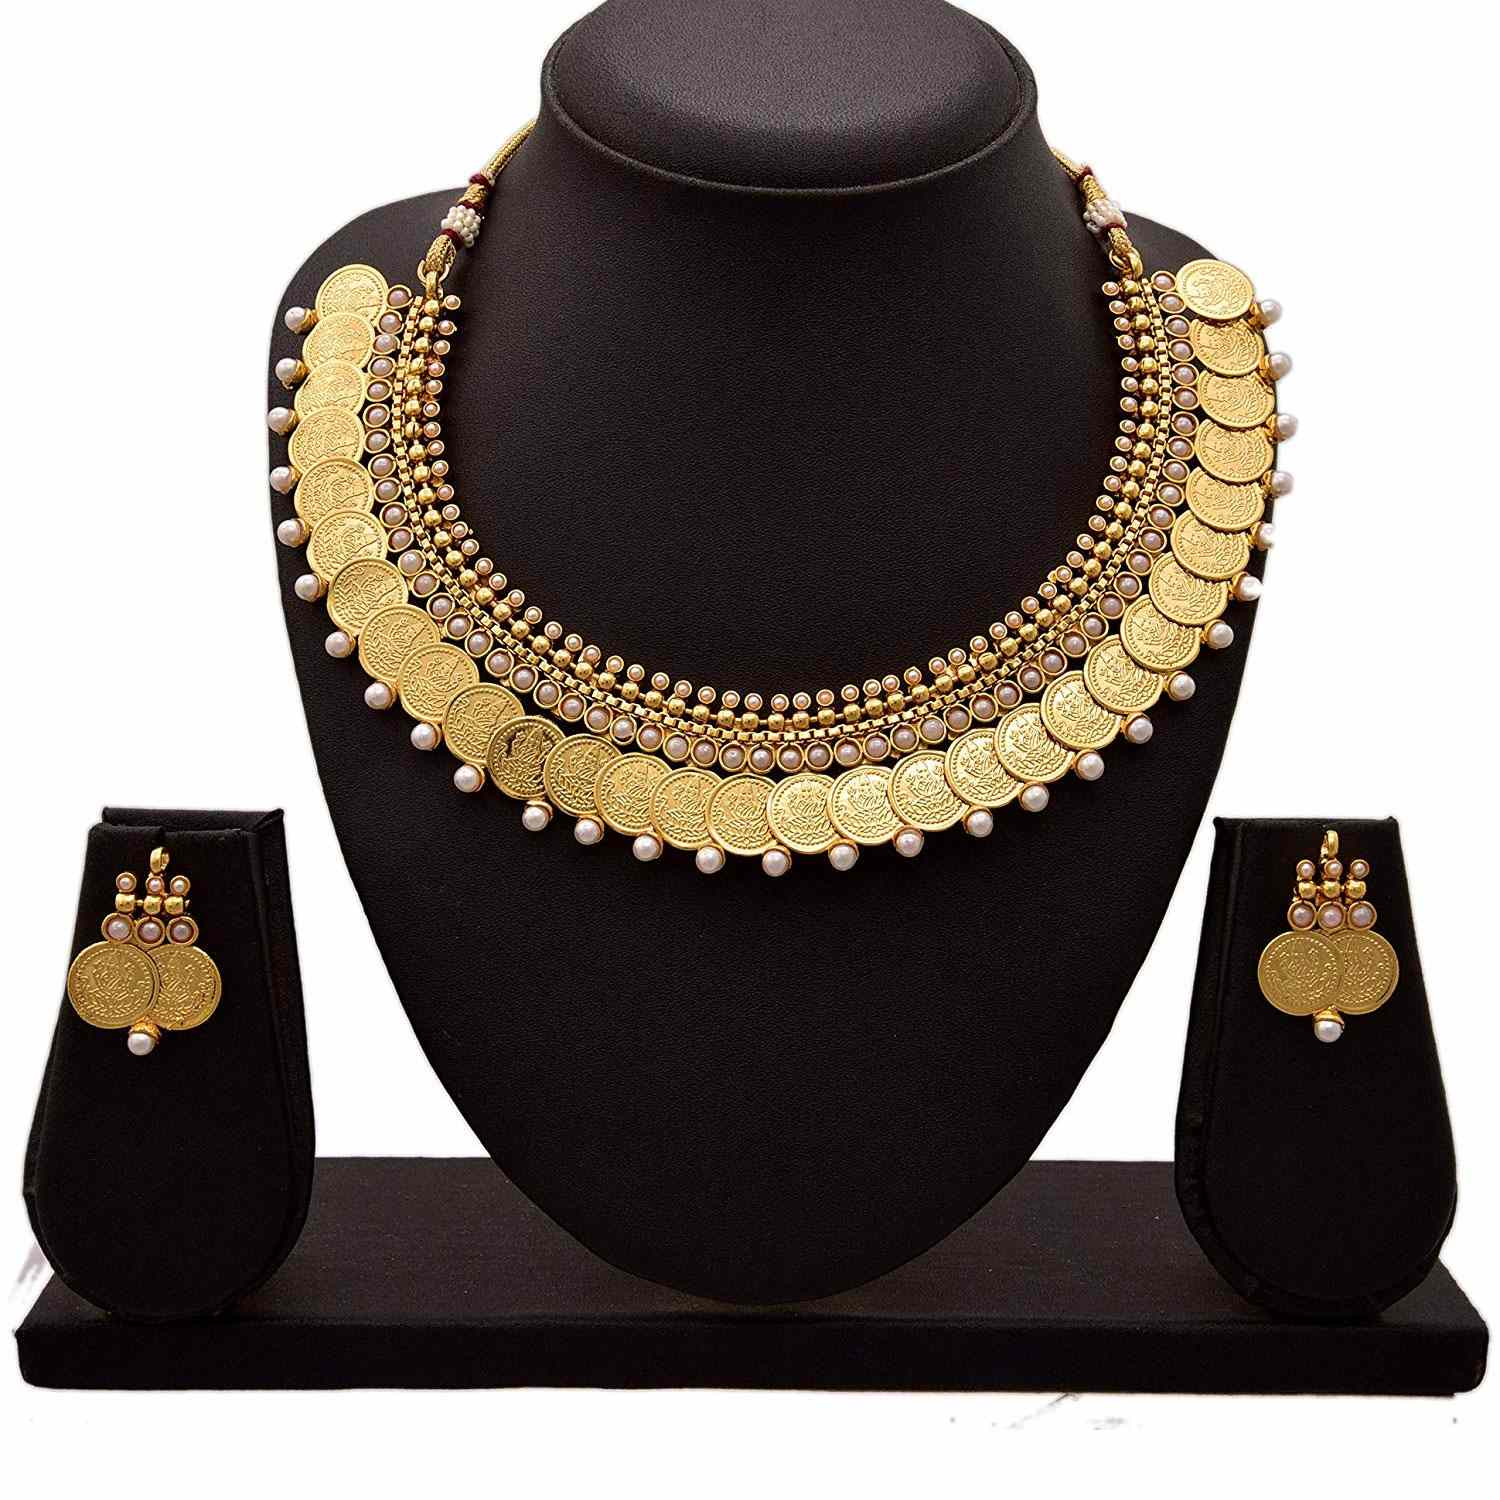 JFL - Traditional Ethnic One Gram Gold Plated Temple Laxmi Goddess Pearls Designer Necklace Set with Earring for Women & Girls.